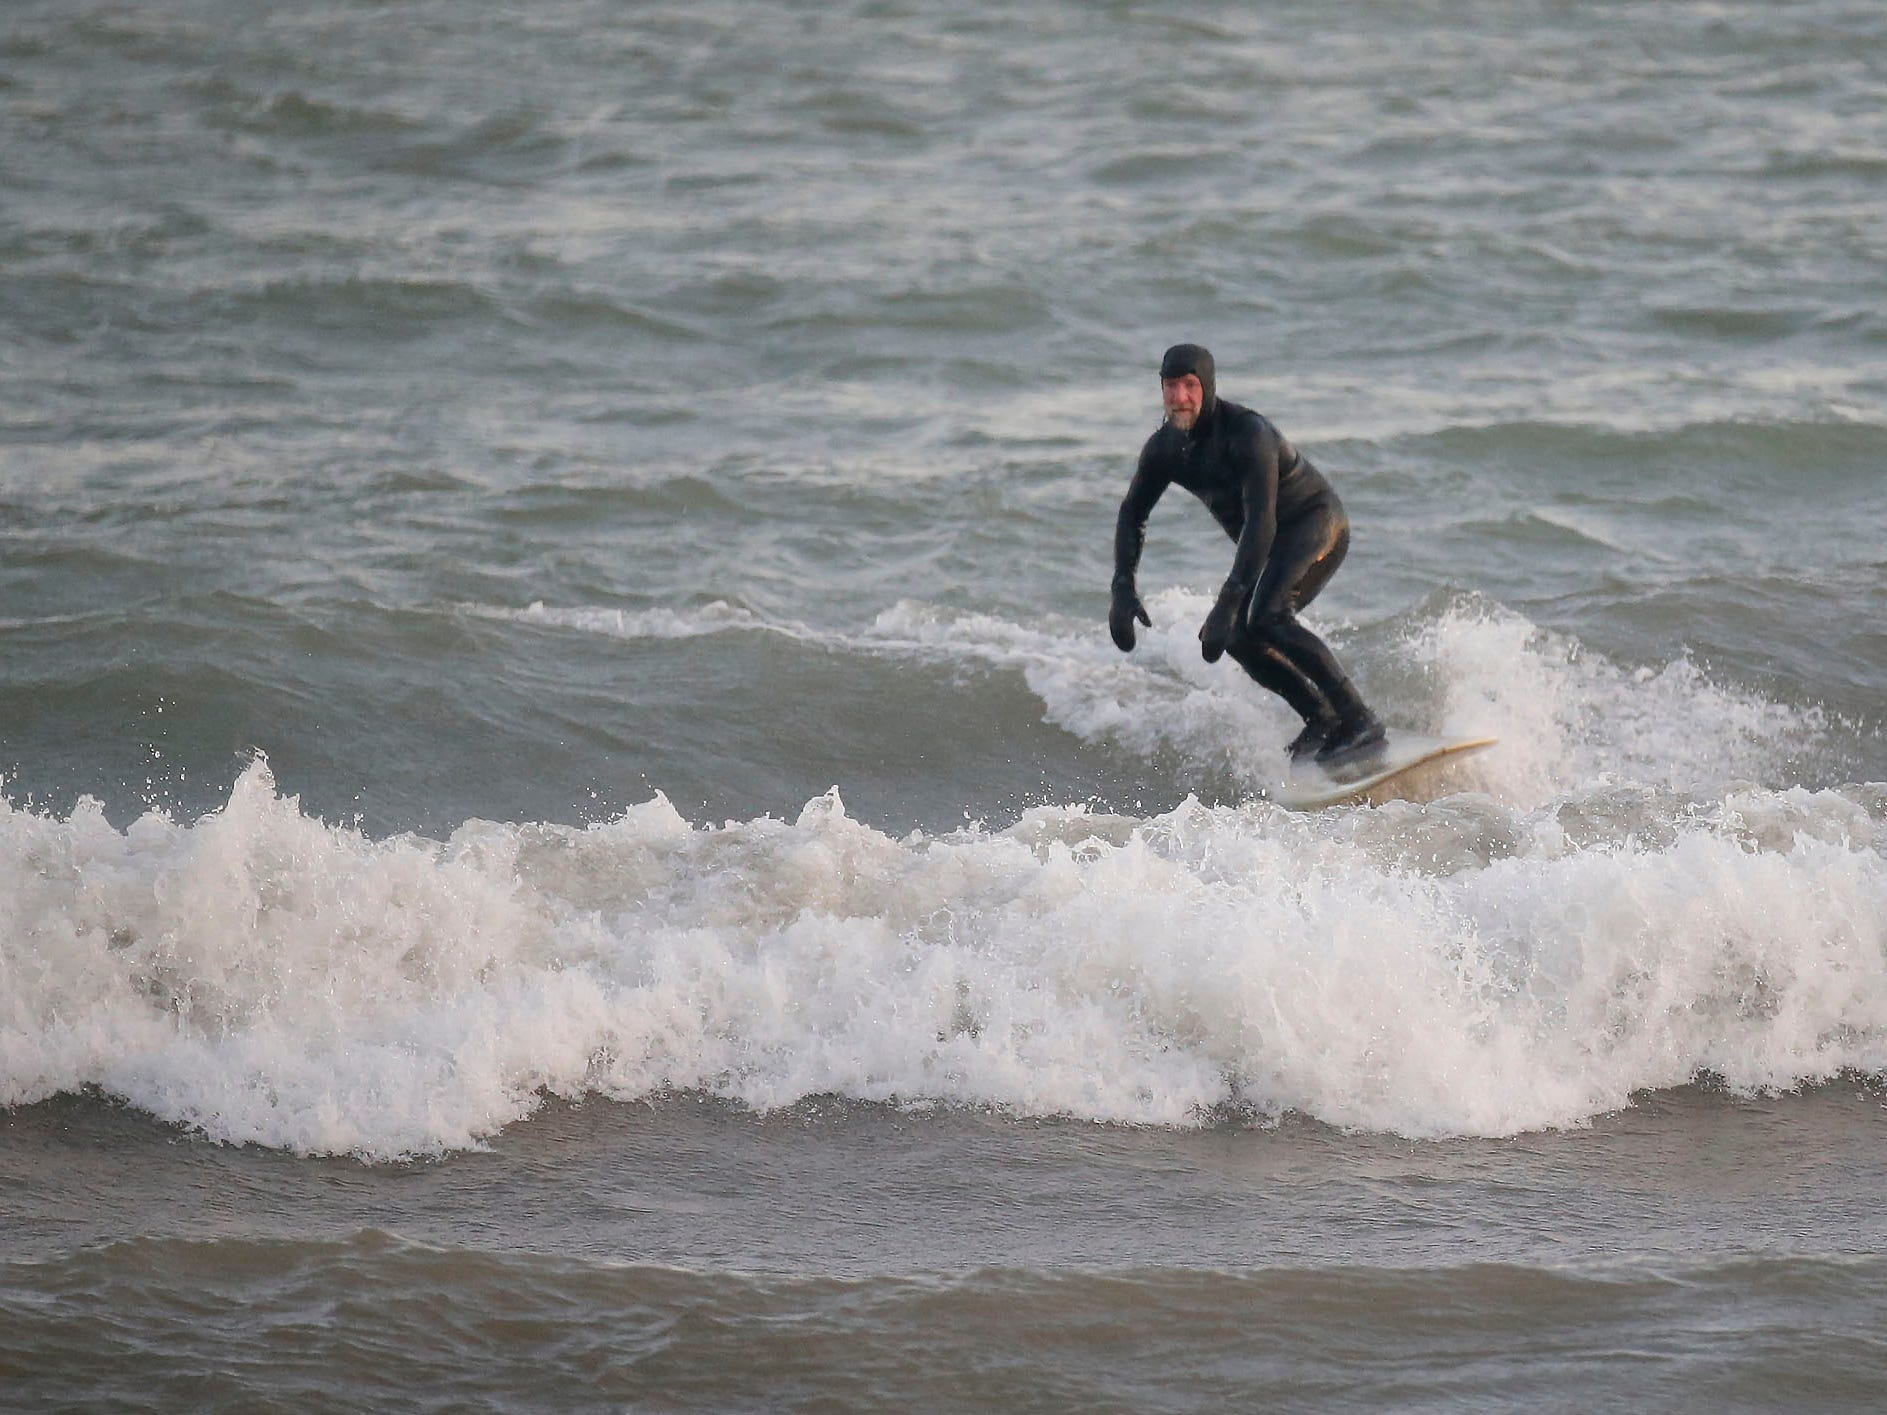 Brian David cuts into a wave at the lakefront, Tuesday, December 18, 2108, in Sheboygan, Wis.